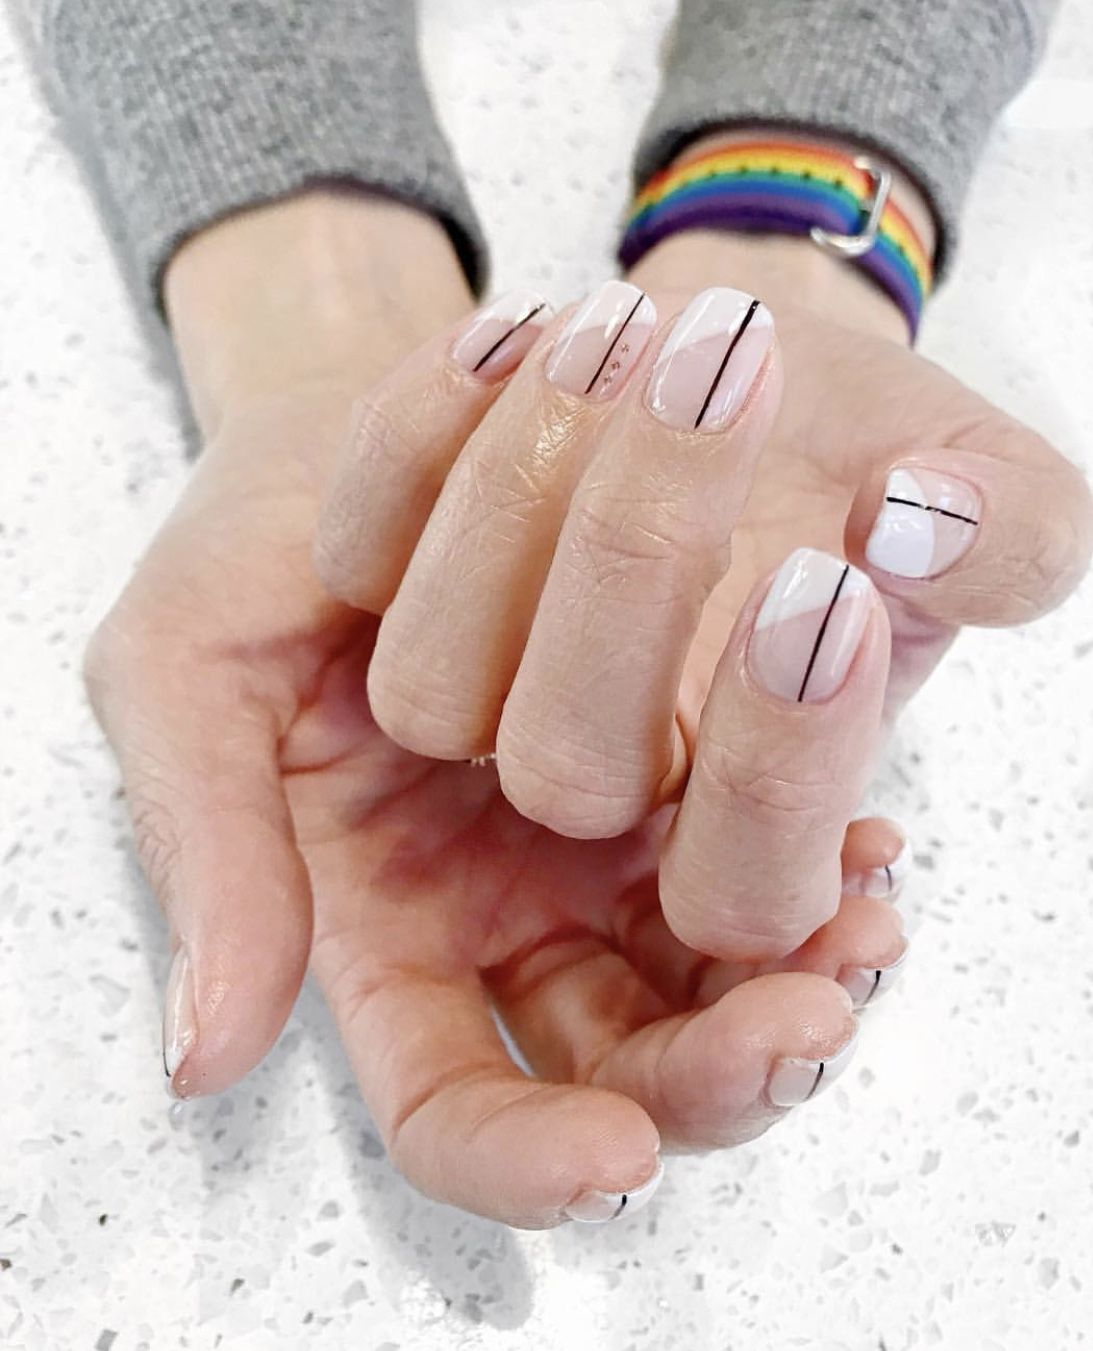 Keeping Things Simplistic With Minimal Lines On A Neutral Manicure Minimalistic Neutral Nails Nails Nailart Naildesi Manicure Swag Nails Nails